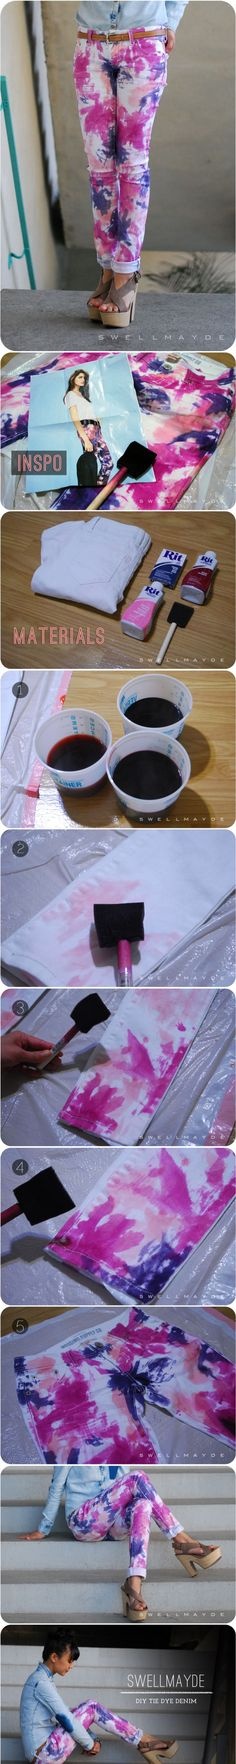 Spruce up your old white jeans with this easy and affordable DIY tie dye denim. Spruce up your old white jeans with this easy and affordable DIY tie dye denim. Diy Clothes Refashion, Diy Clothing, Jeans Refashion, How To Tie Dye, How To Dye Fabric, Diy Tie Dye Denim, Shibori, Vetements Shoes, Fabric Crafts